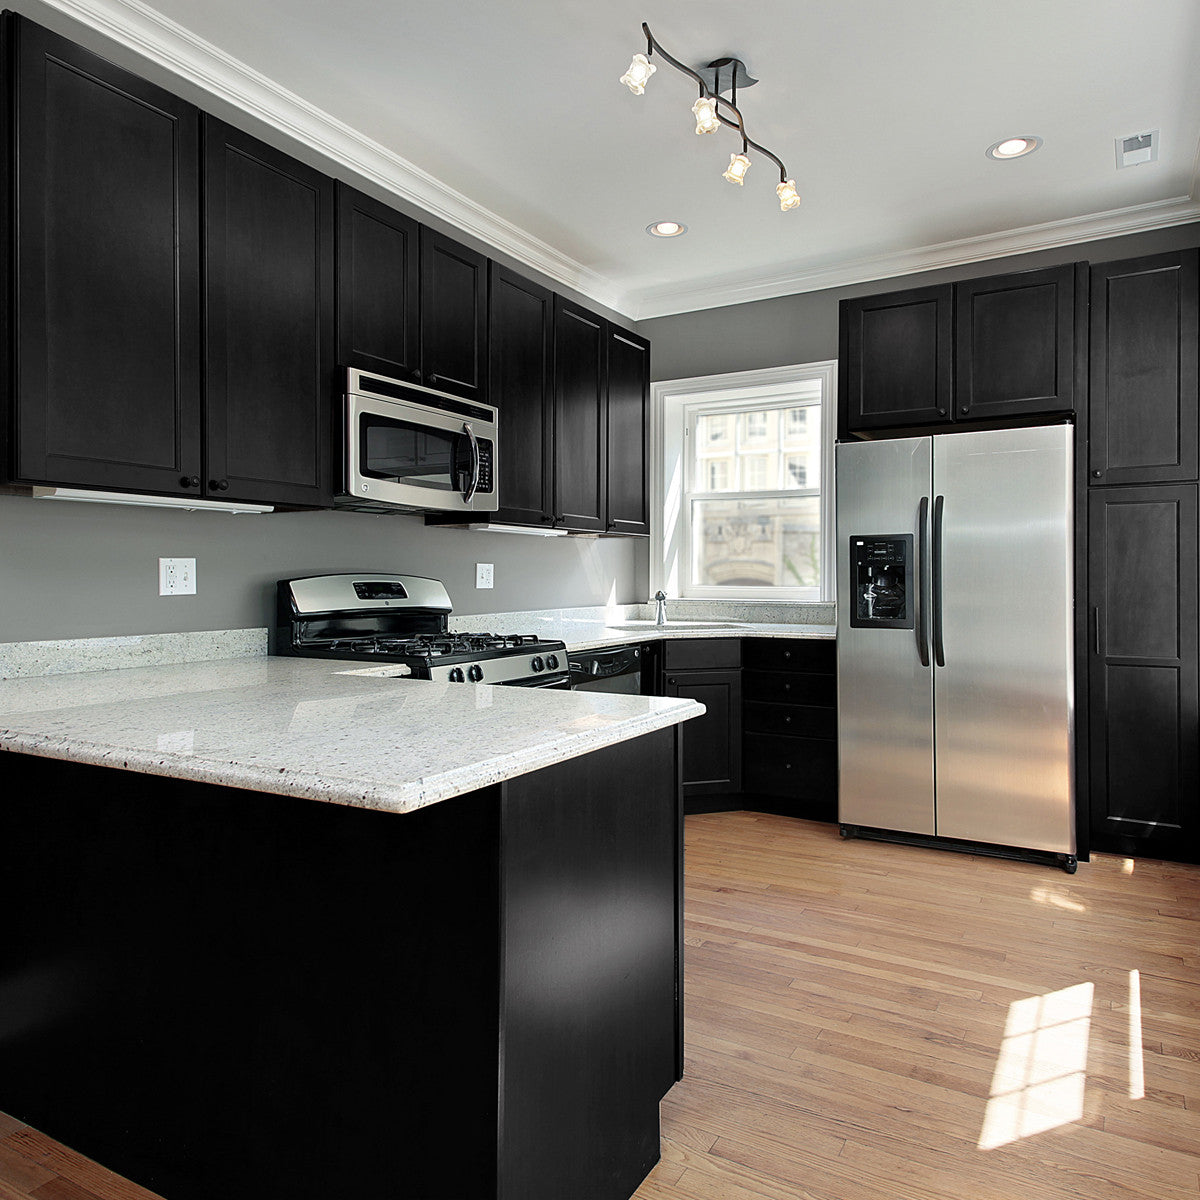 Kitchen Cabinets Painted Black: Nuvo Black Deco Cabinet Paint Kit